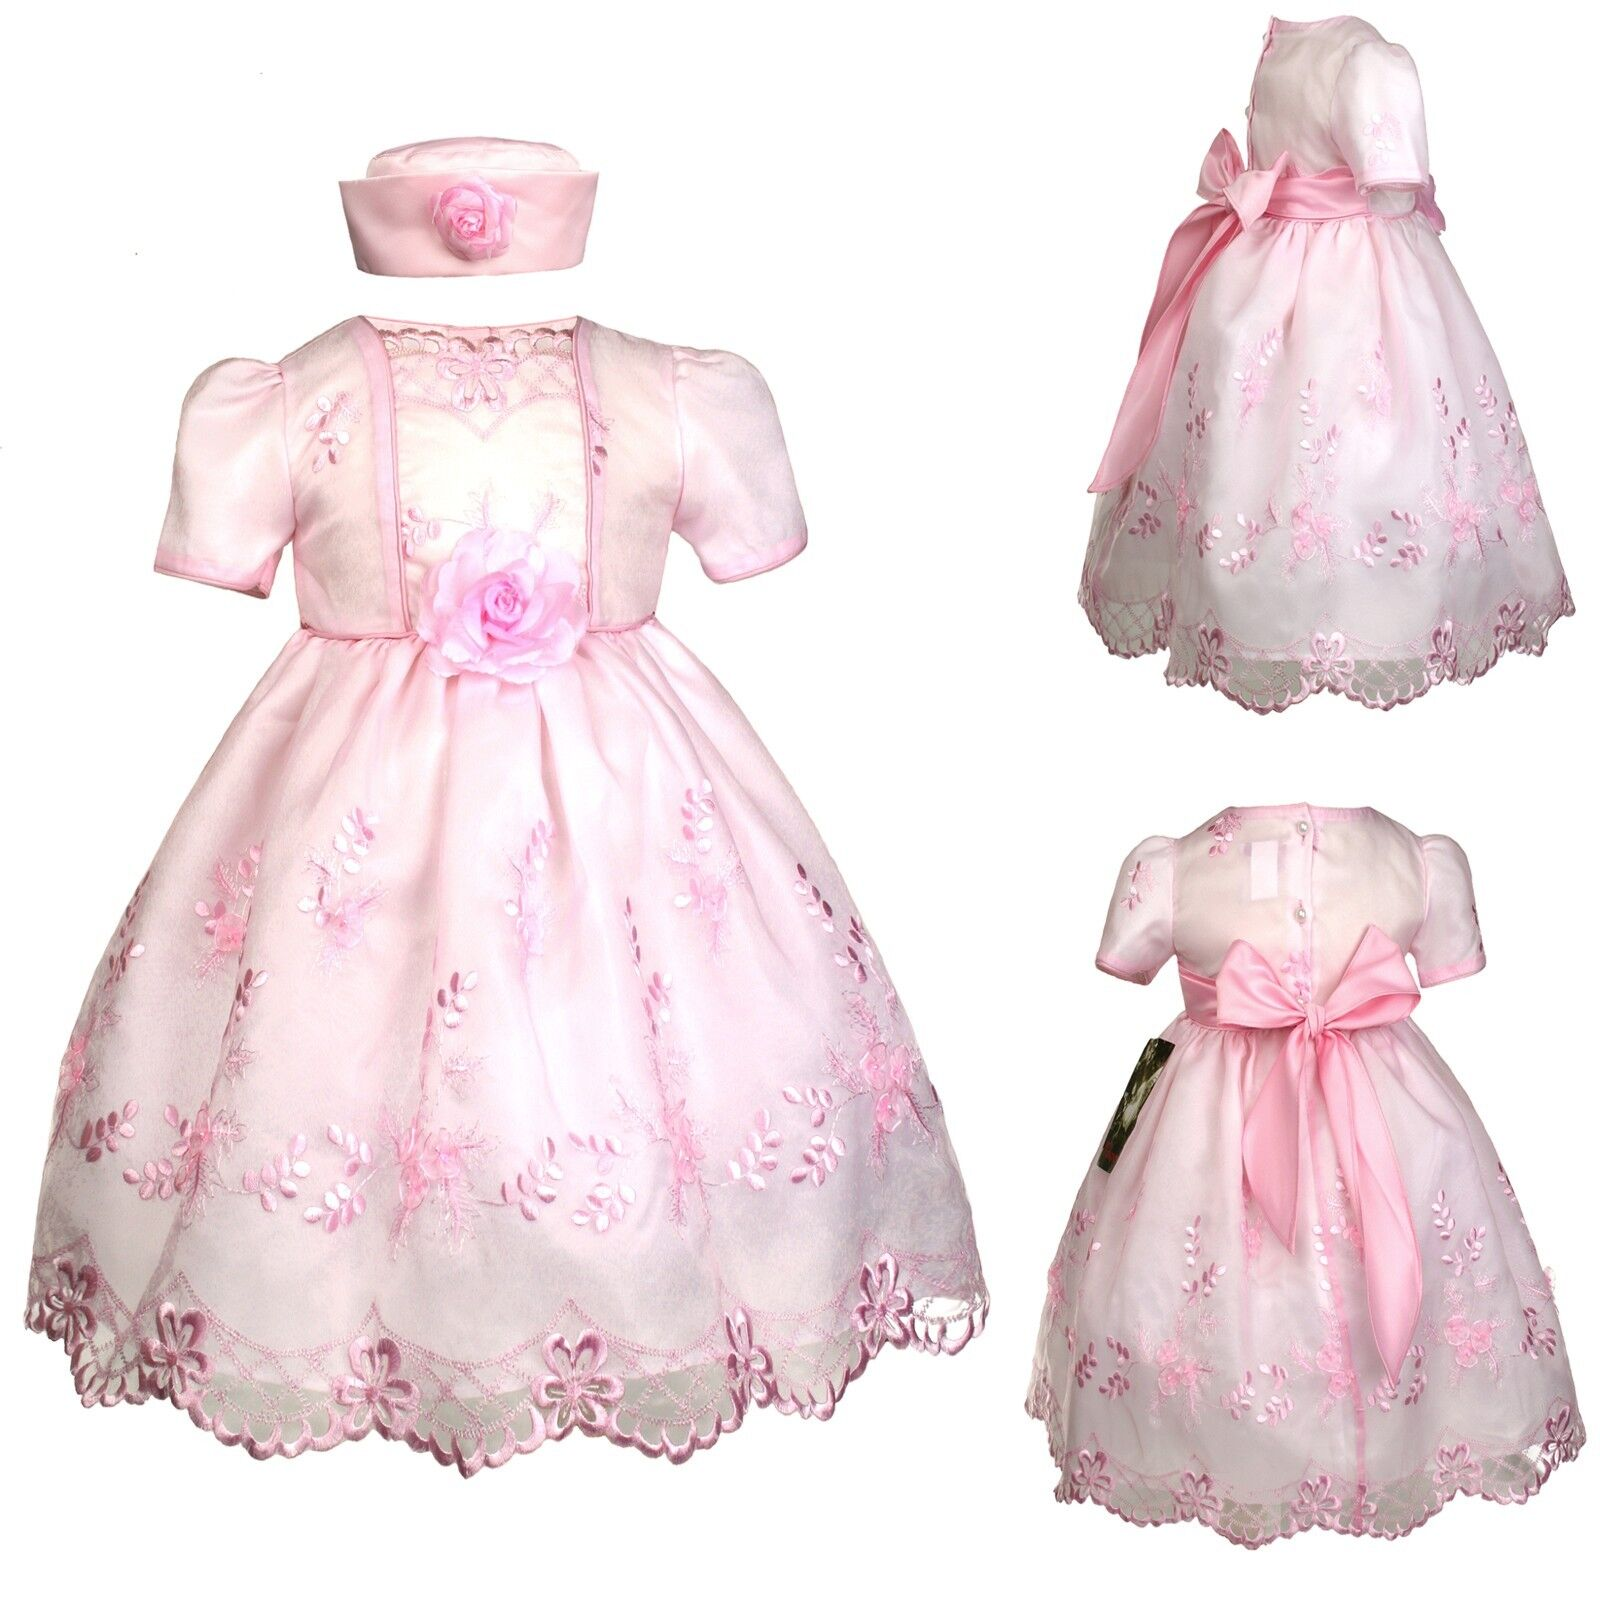 New Baby Girl Toddler Pink Dresses Wedding Prom Easter Formal Party sz: S M L XL